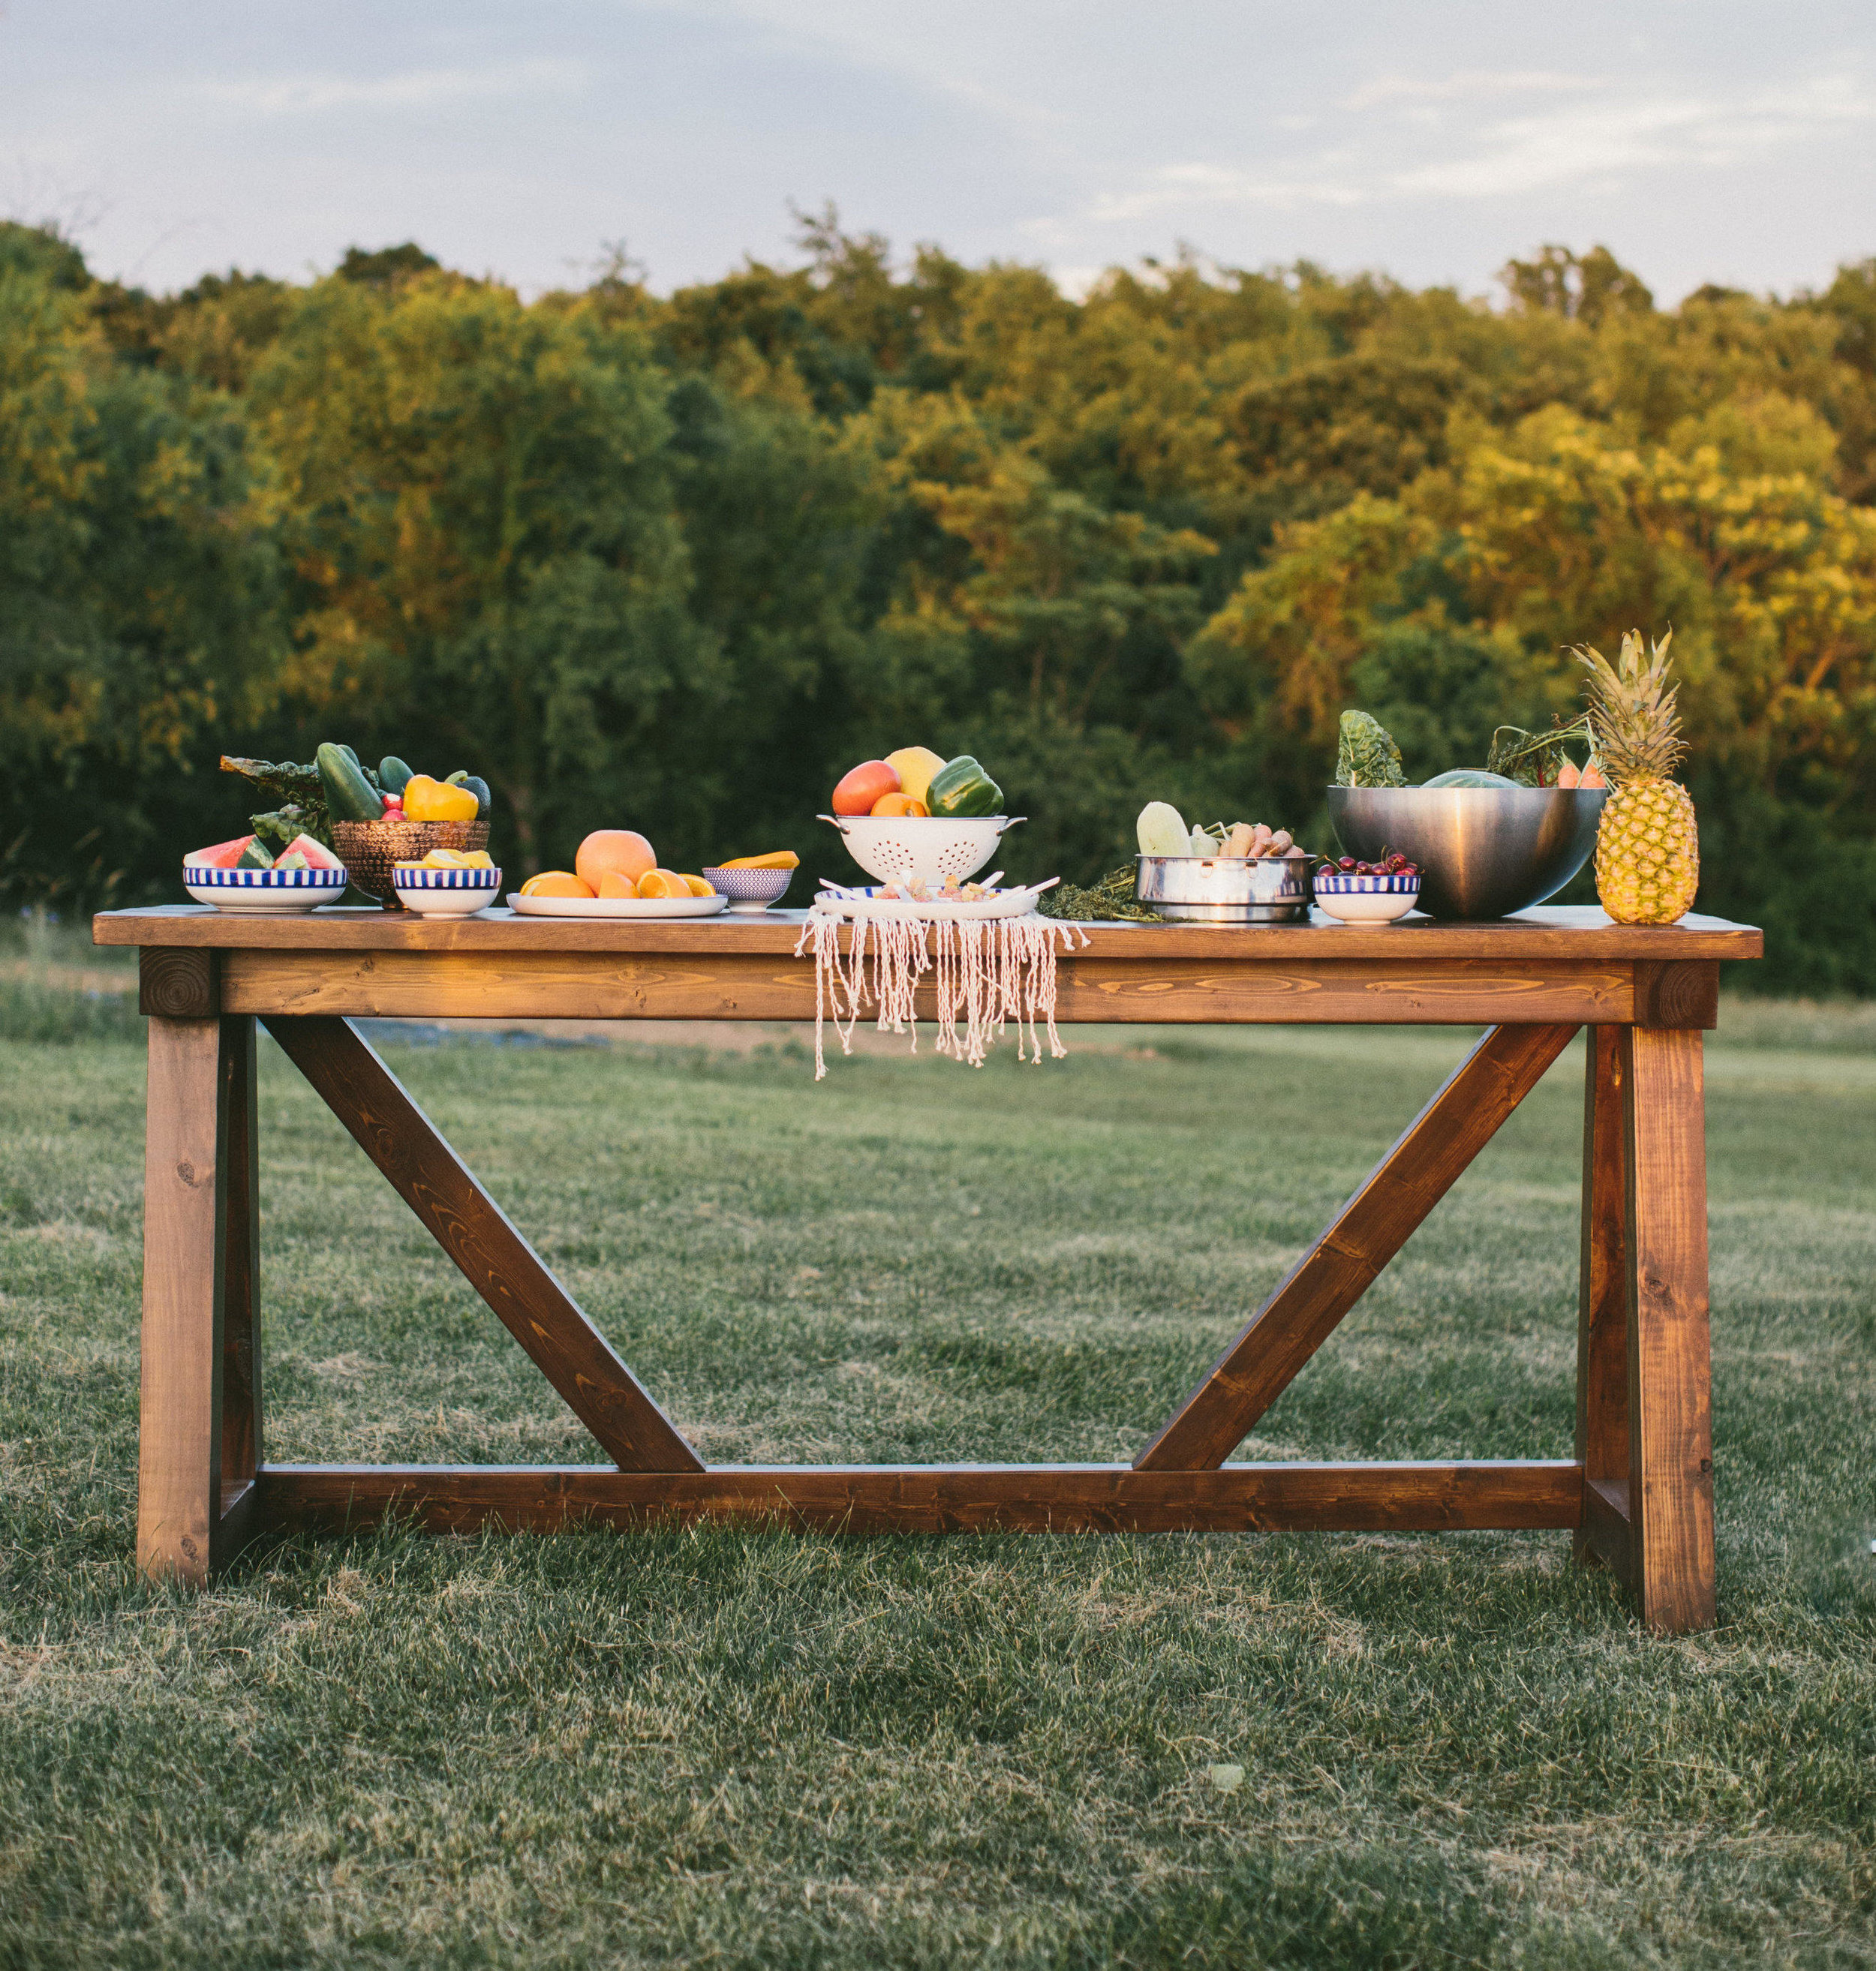 Penn Rustics_Truss Beam Table_Photography by All Heart Photo and Video.jpg